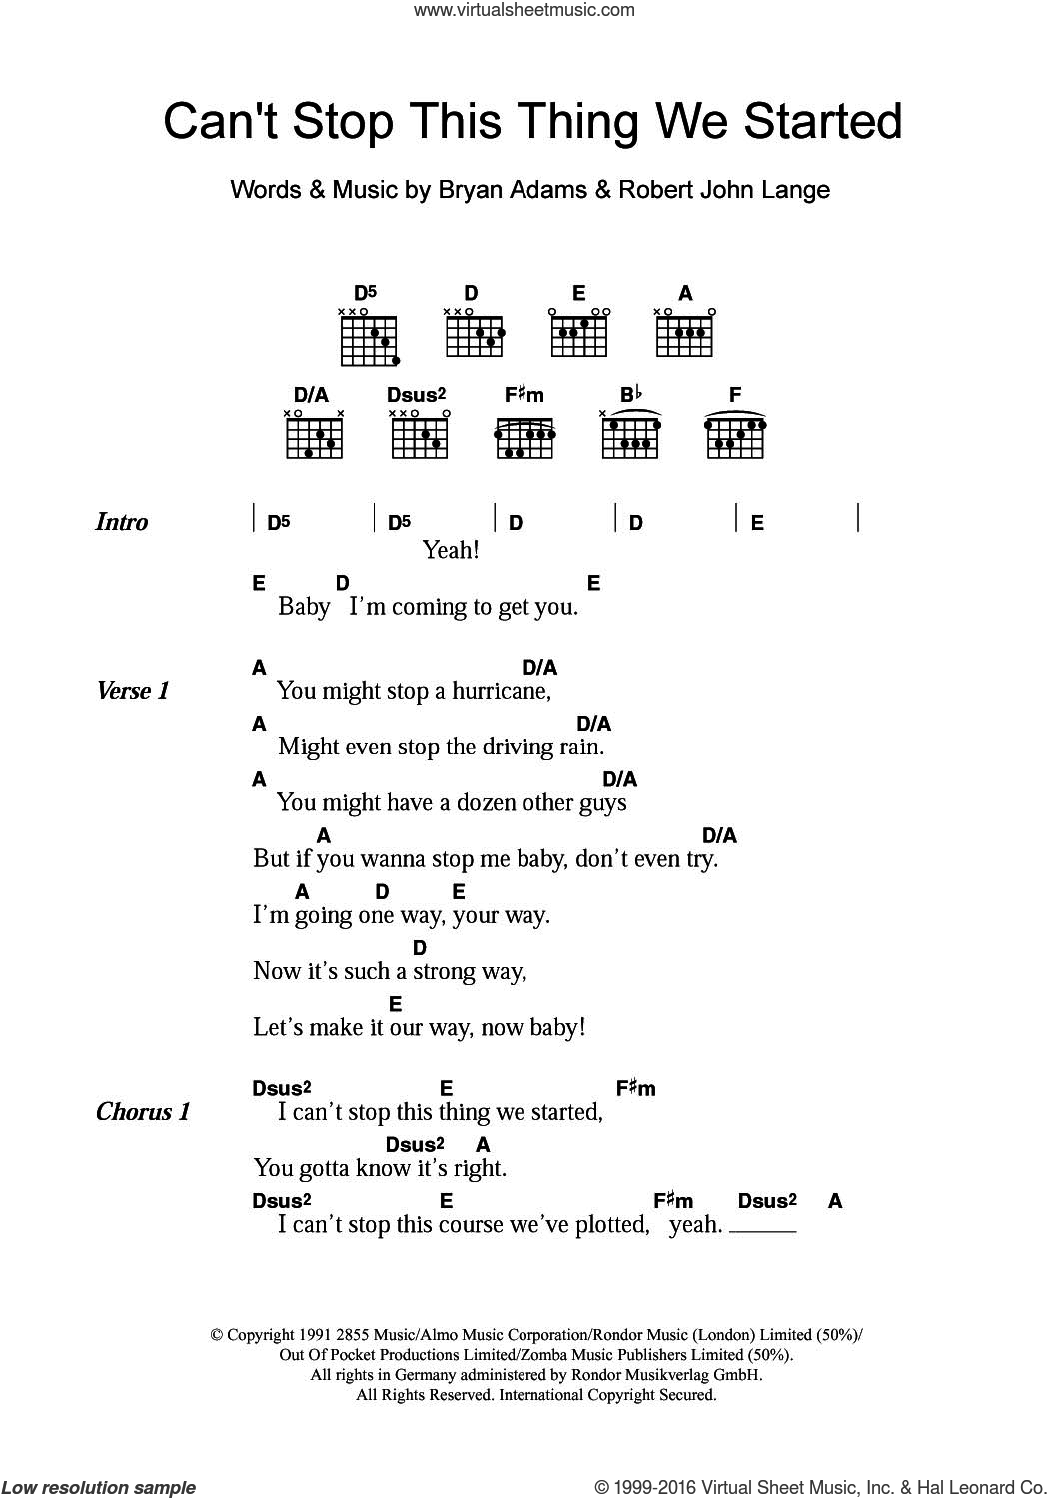 Can't Stop This Thing We Started sheet music for guitar (chords) by Bryan Adams and Robert John Lange. Score Image Preview.